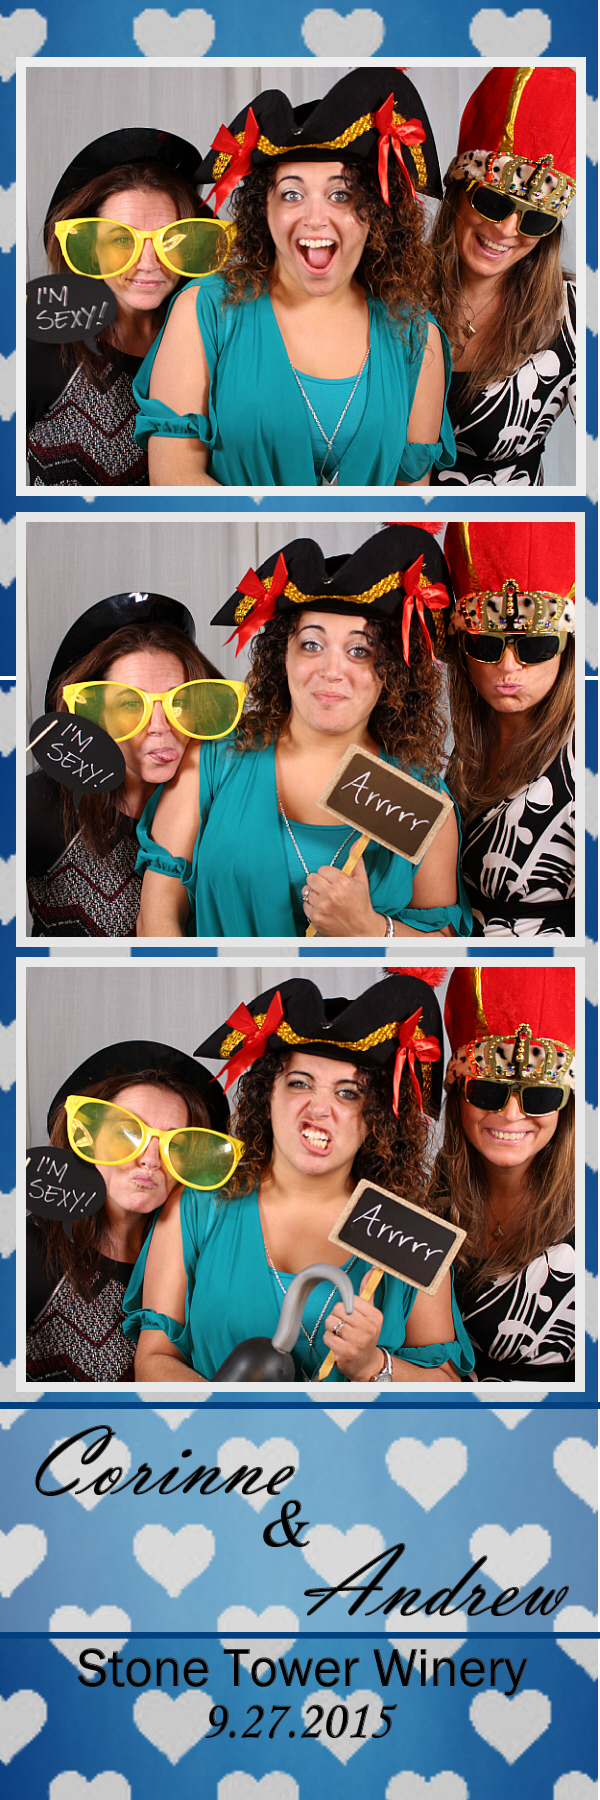 Guest House Events Photo Booth C&A (2).jpg